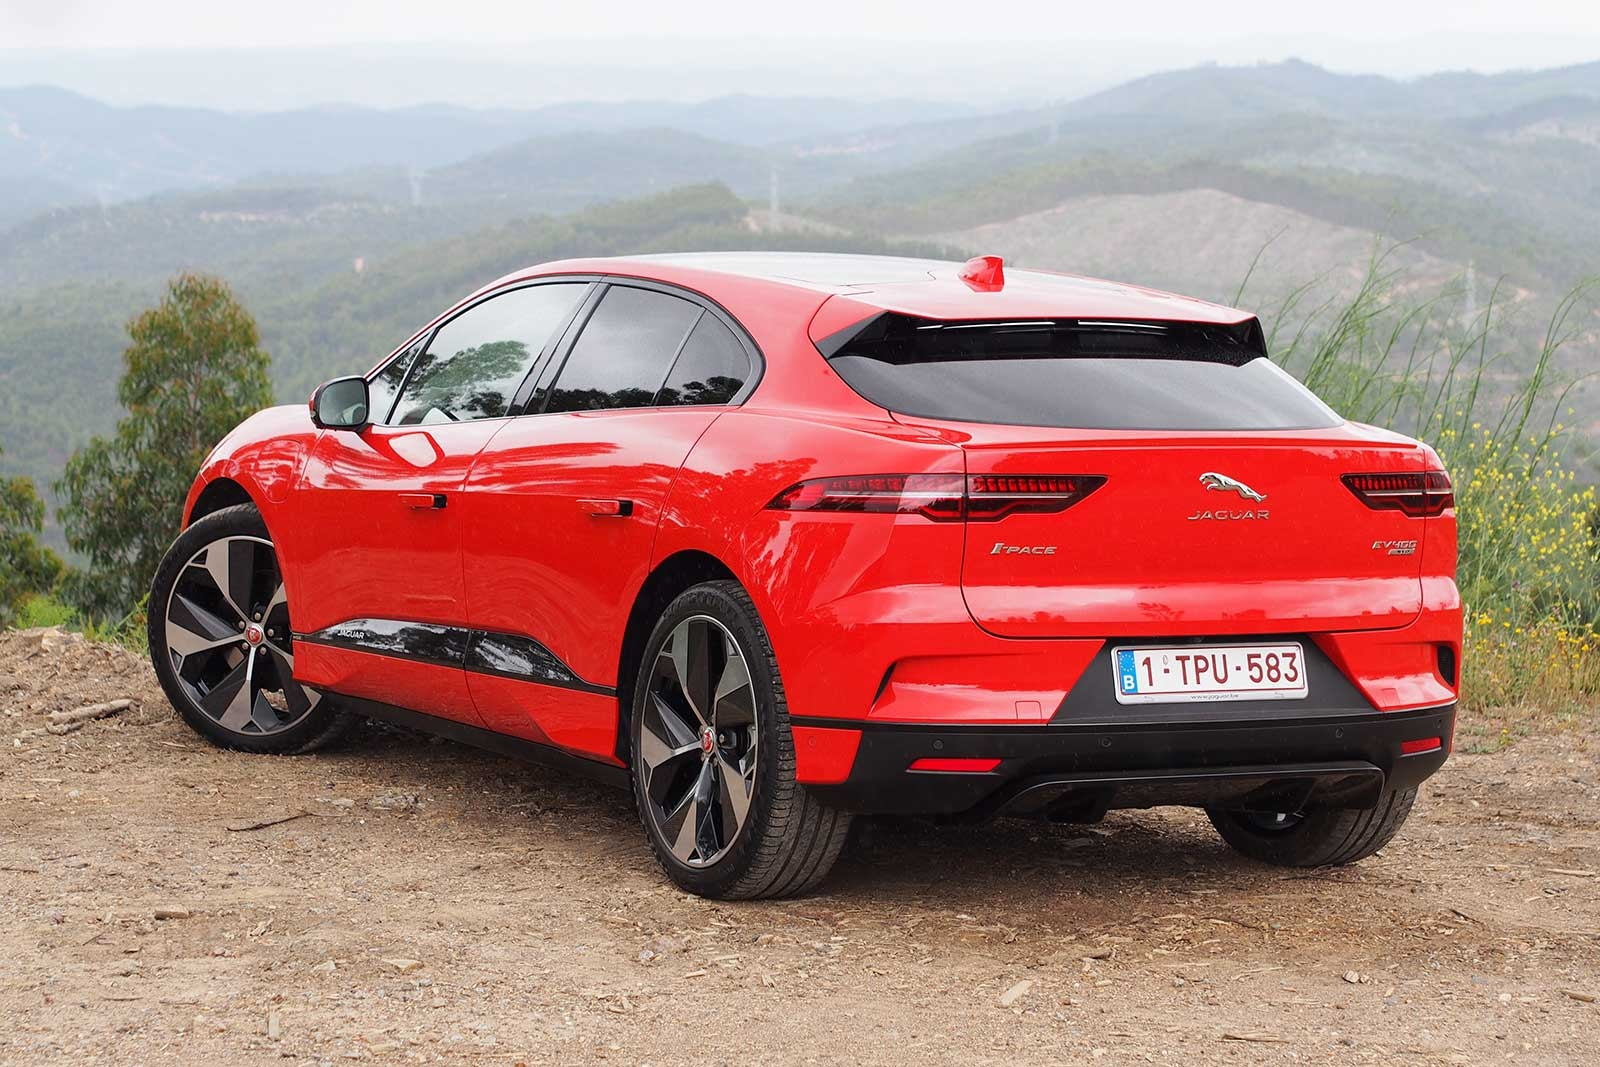 2019-Jaguar-I-Pace-Rear-02